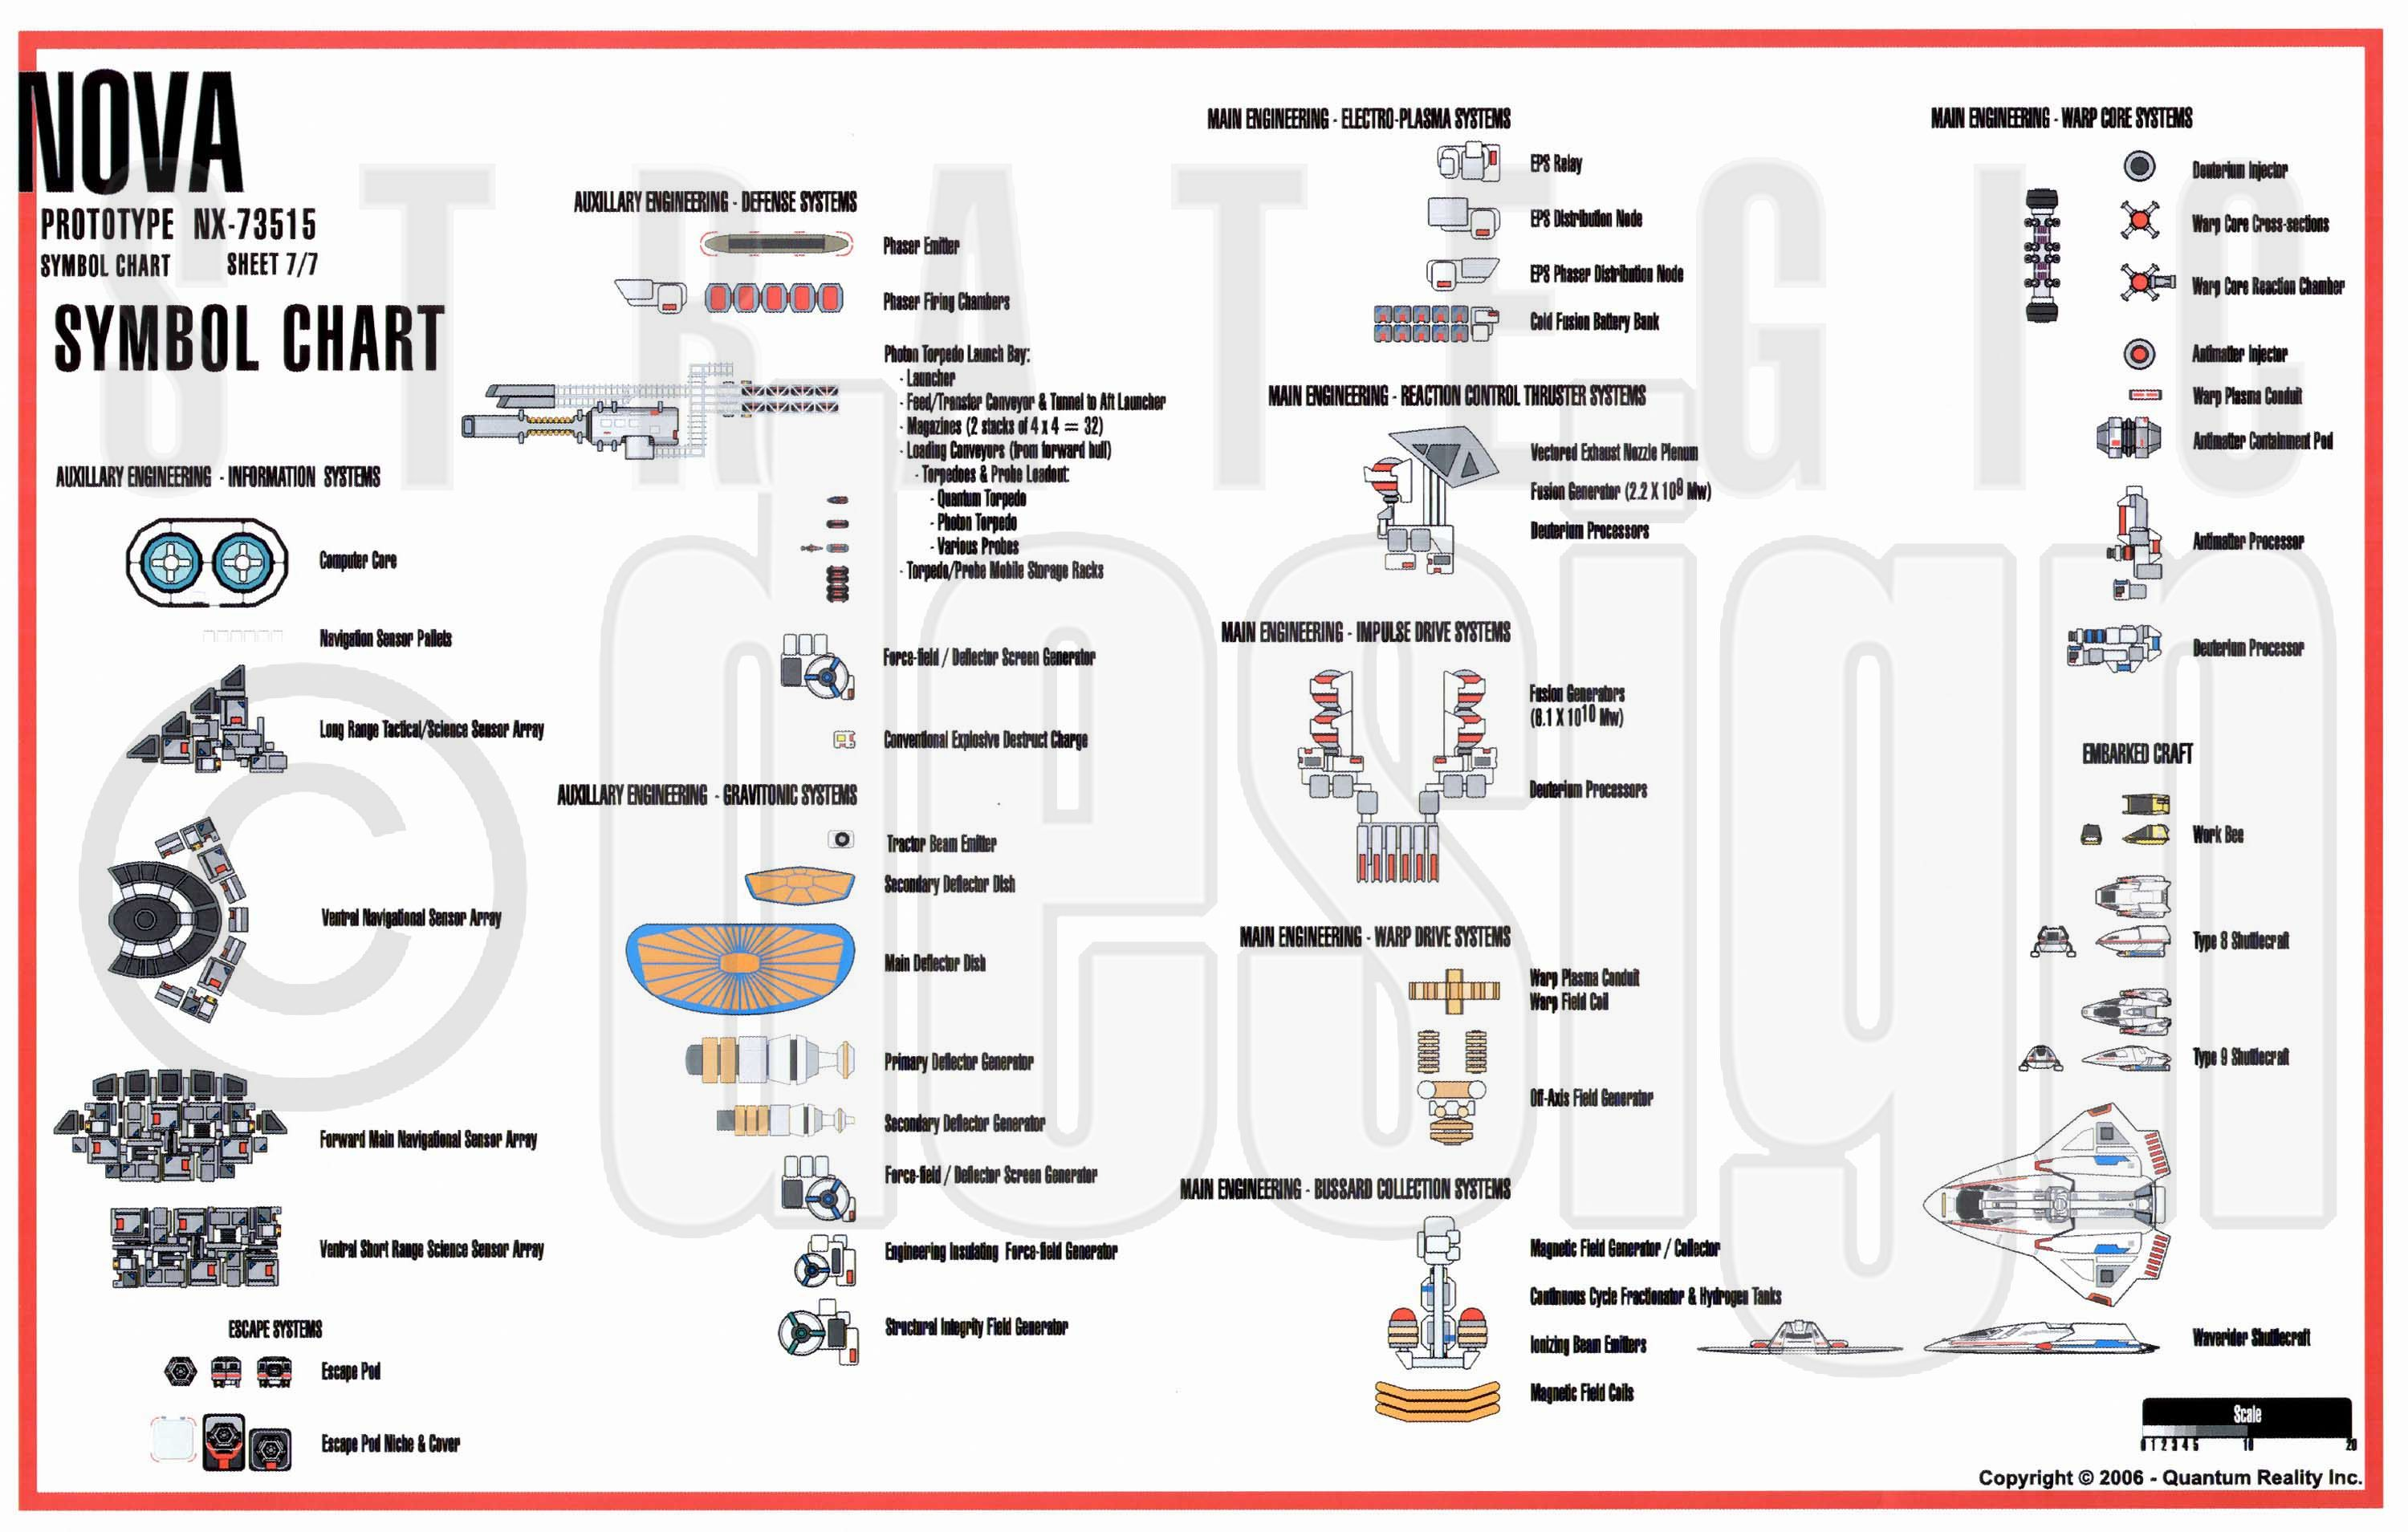 Star Trek Blueprints: U.S.S. Nova NX-73515